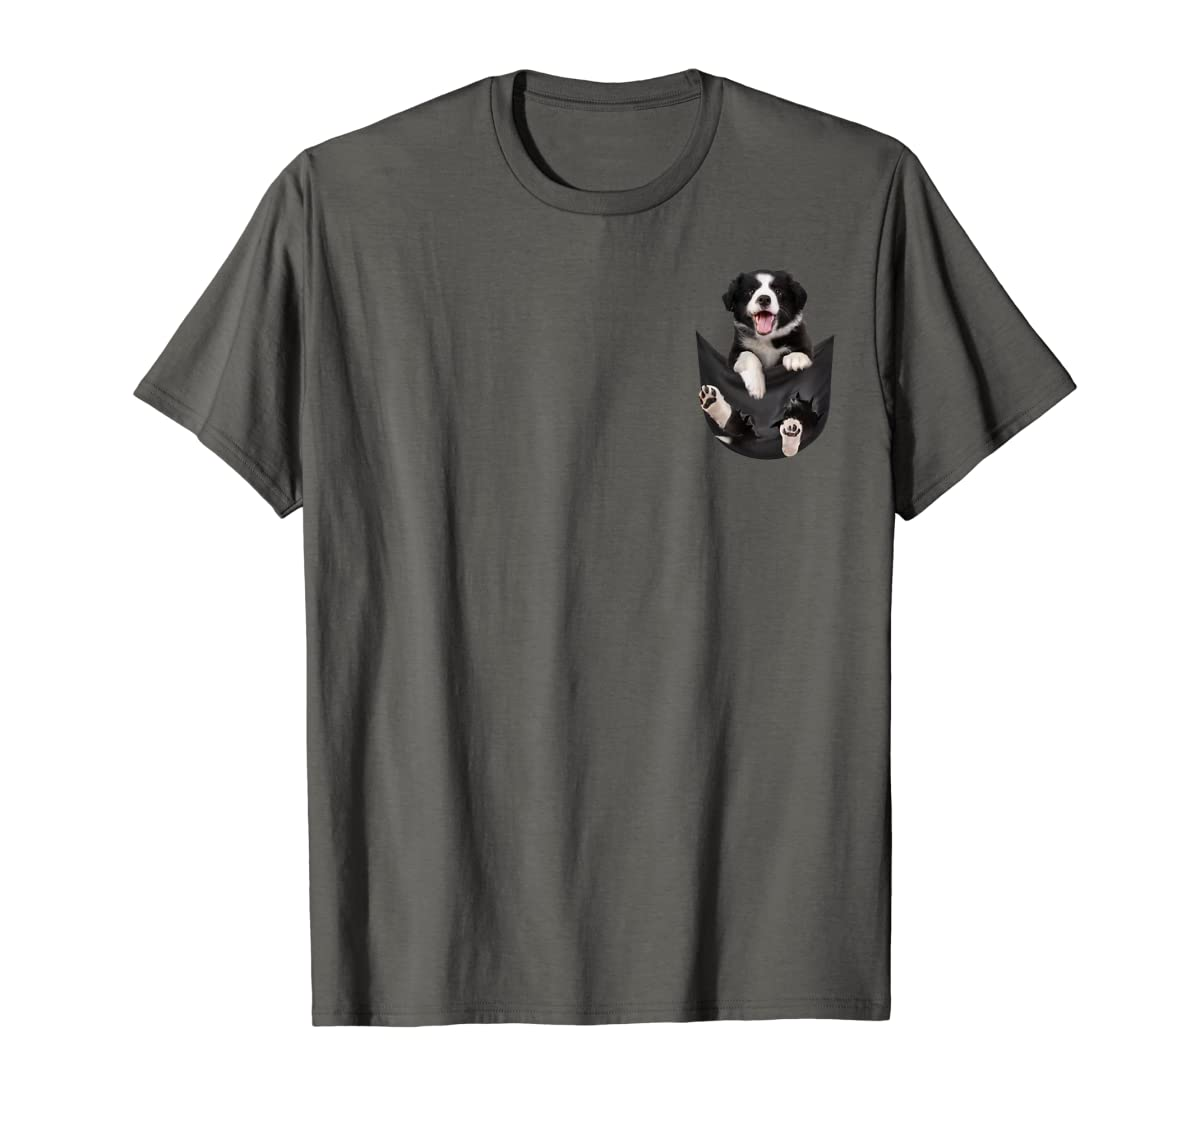 Gift dog funny cute shirt - Border Collie in pocket shirt T-Shirt-Men's T-Shirt-Dark Heather